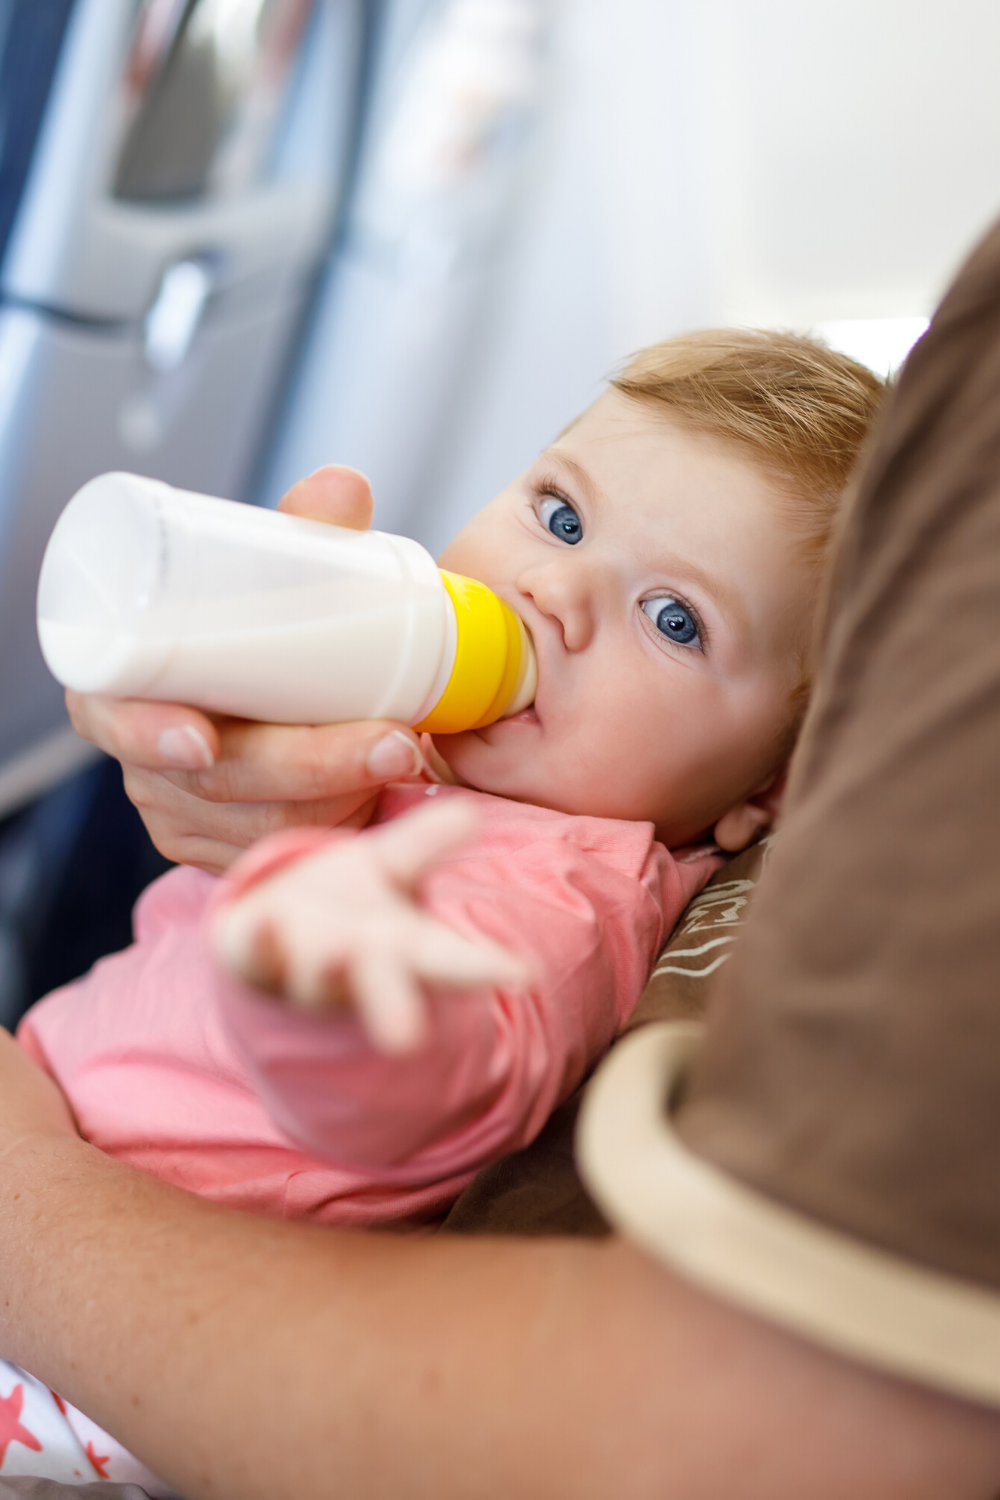 Symptoms and Managing Cows Milk Protein Allergy for Baby